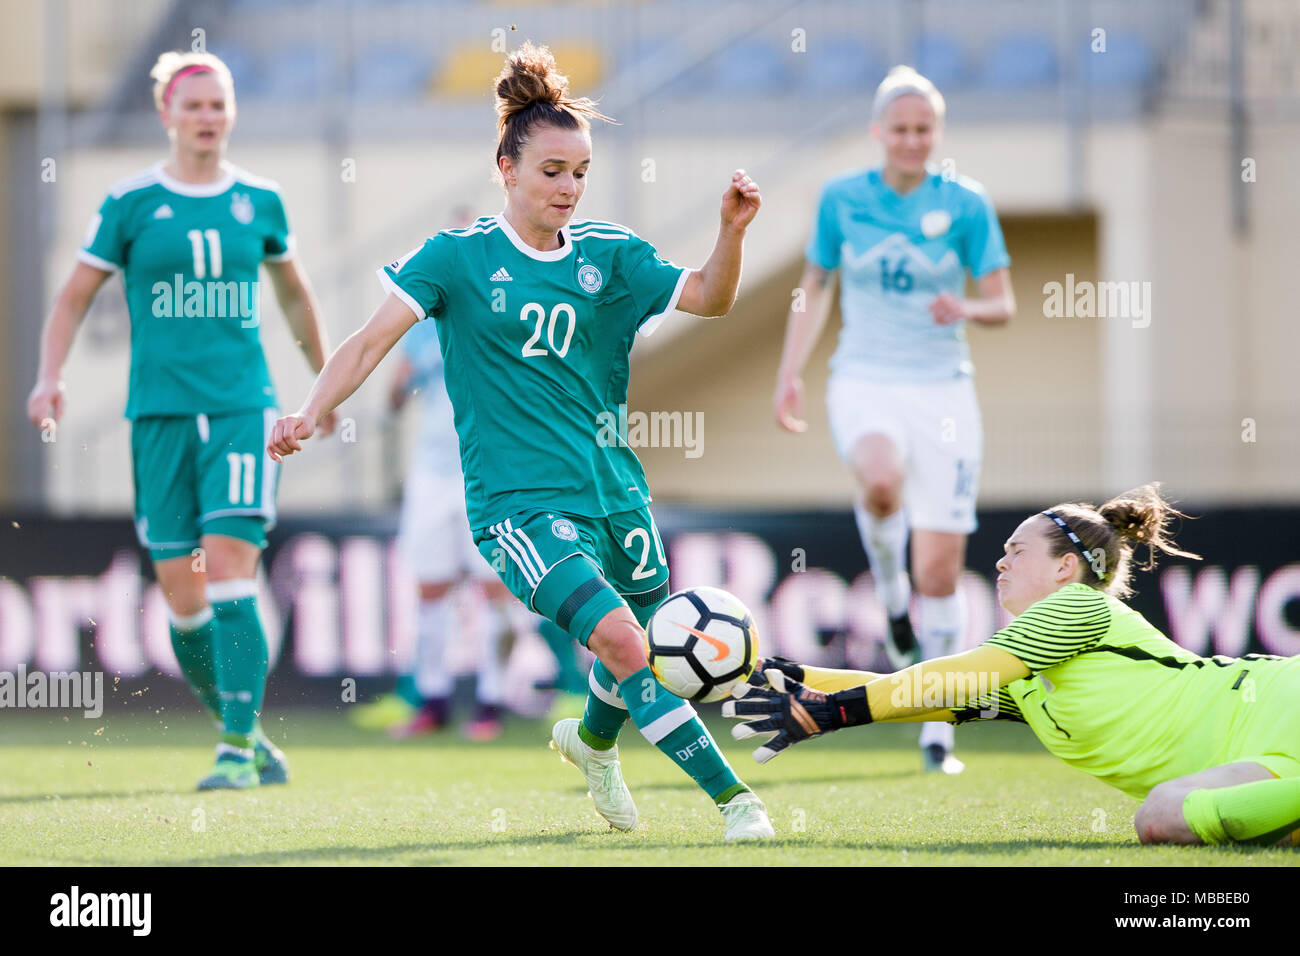 Wonderful Europe World Cup 2018 - 10-april-2018-slovenia-domzale-soccer-womens-world-cup-qualification-europe-group-stages-slovenia-vs-germany-germanys-lina-magull-c-and-slovenias-zala-mersnik-bottom-in-action-photo-sasa-pahic-szabodpa-MBBEB0  Pictures_592498 .jpg